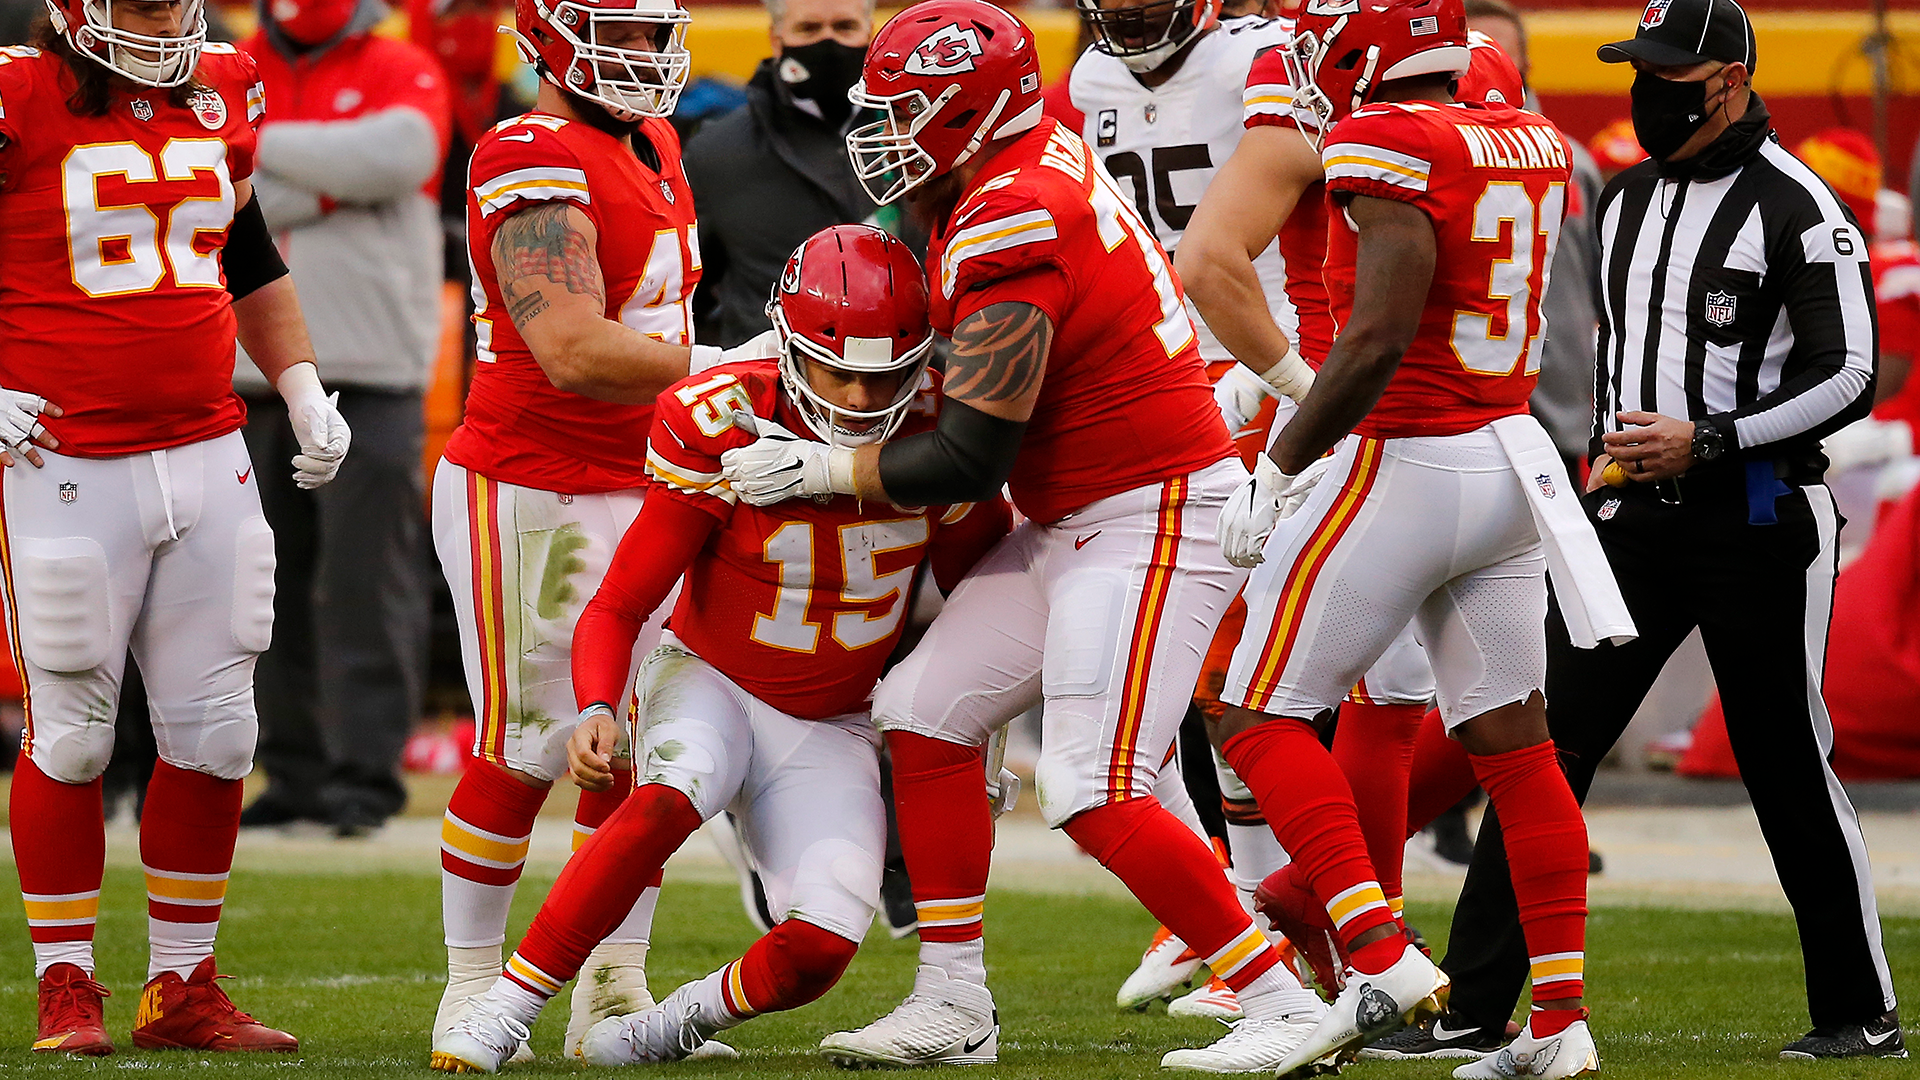 Patrick Mahomes injury update: Chiefs QB may have tweaked nerve, playoff status still uncertain